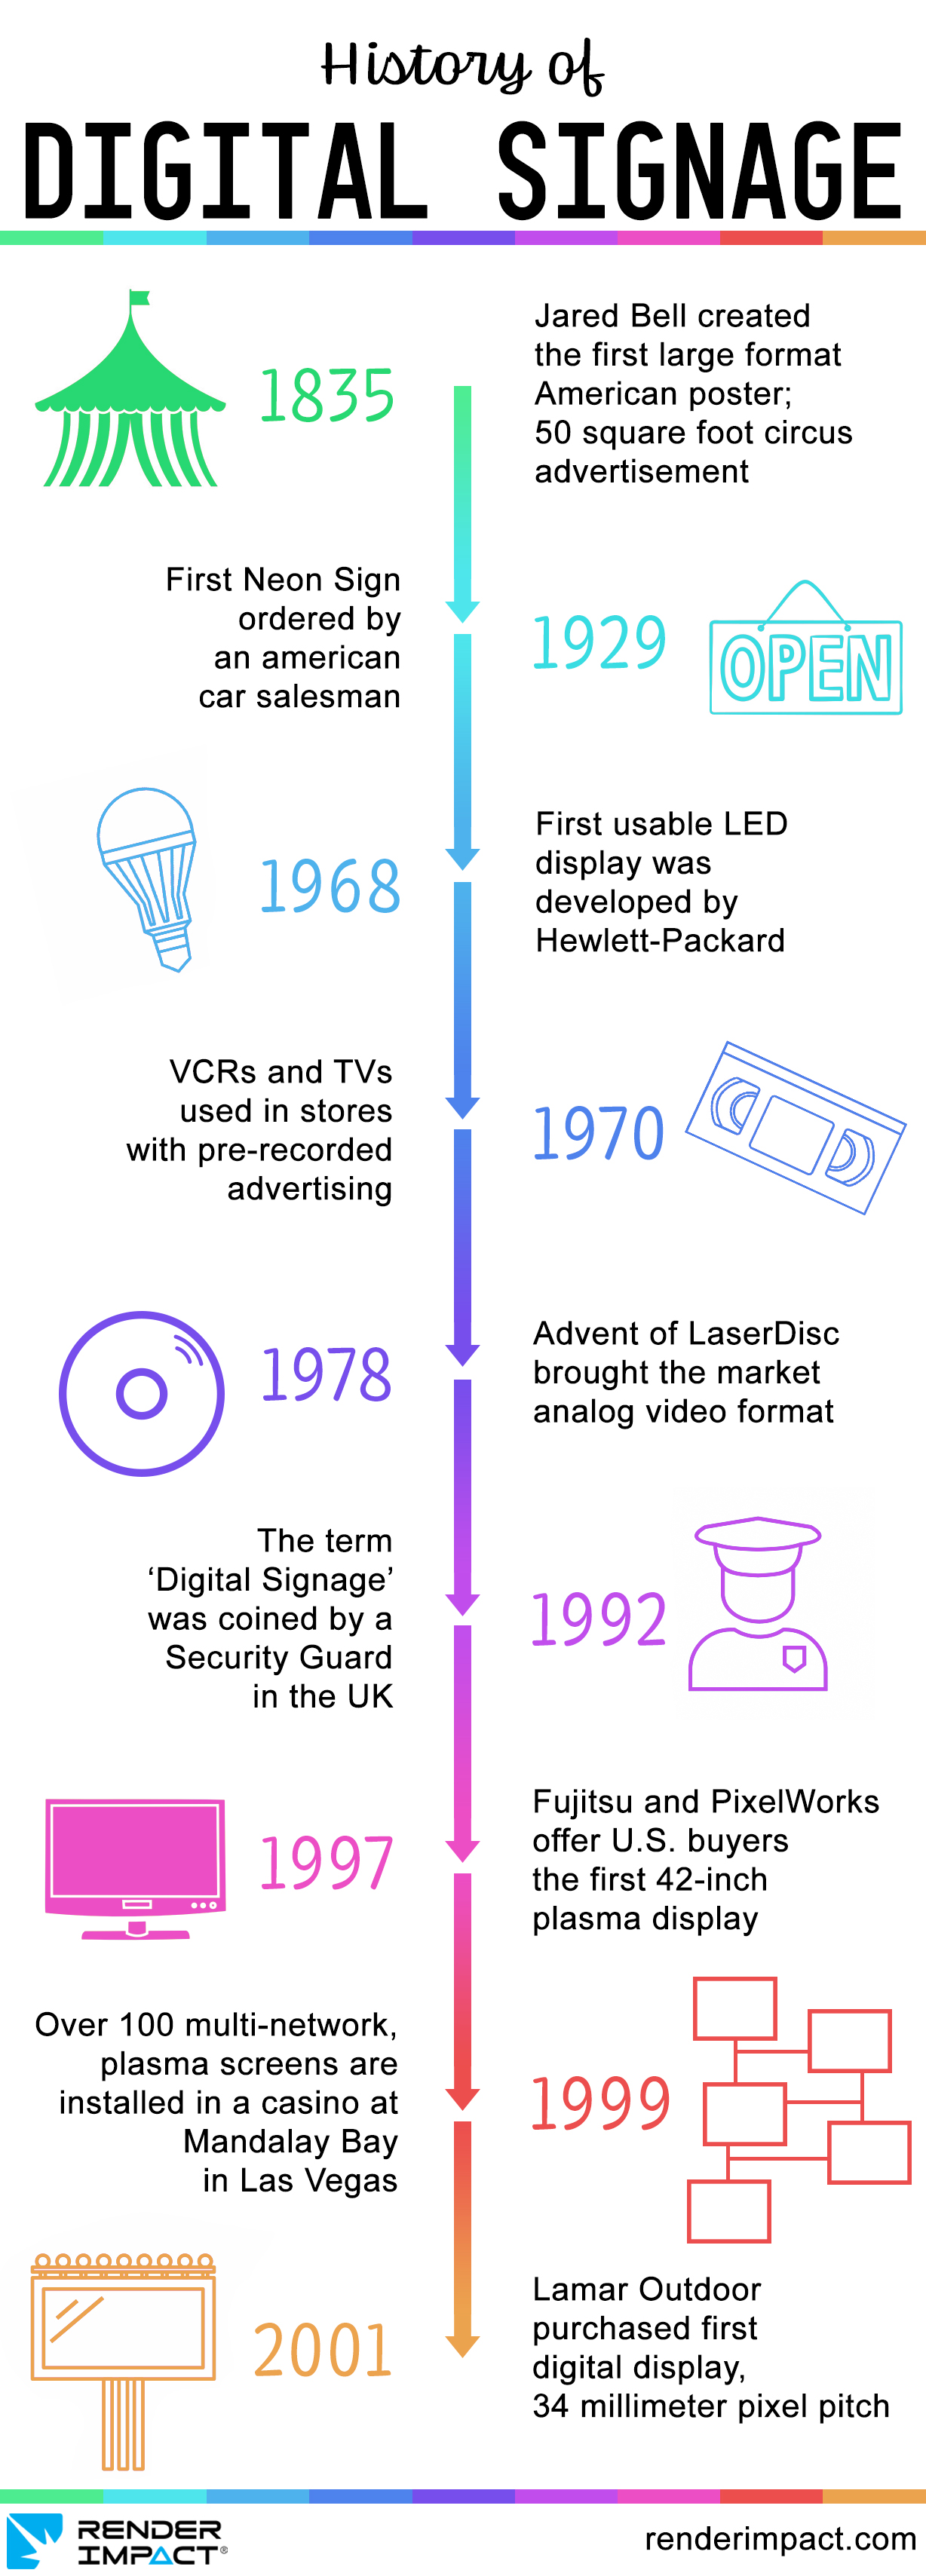 History of Digital Signage Infographic